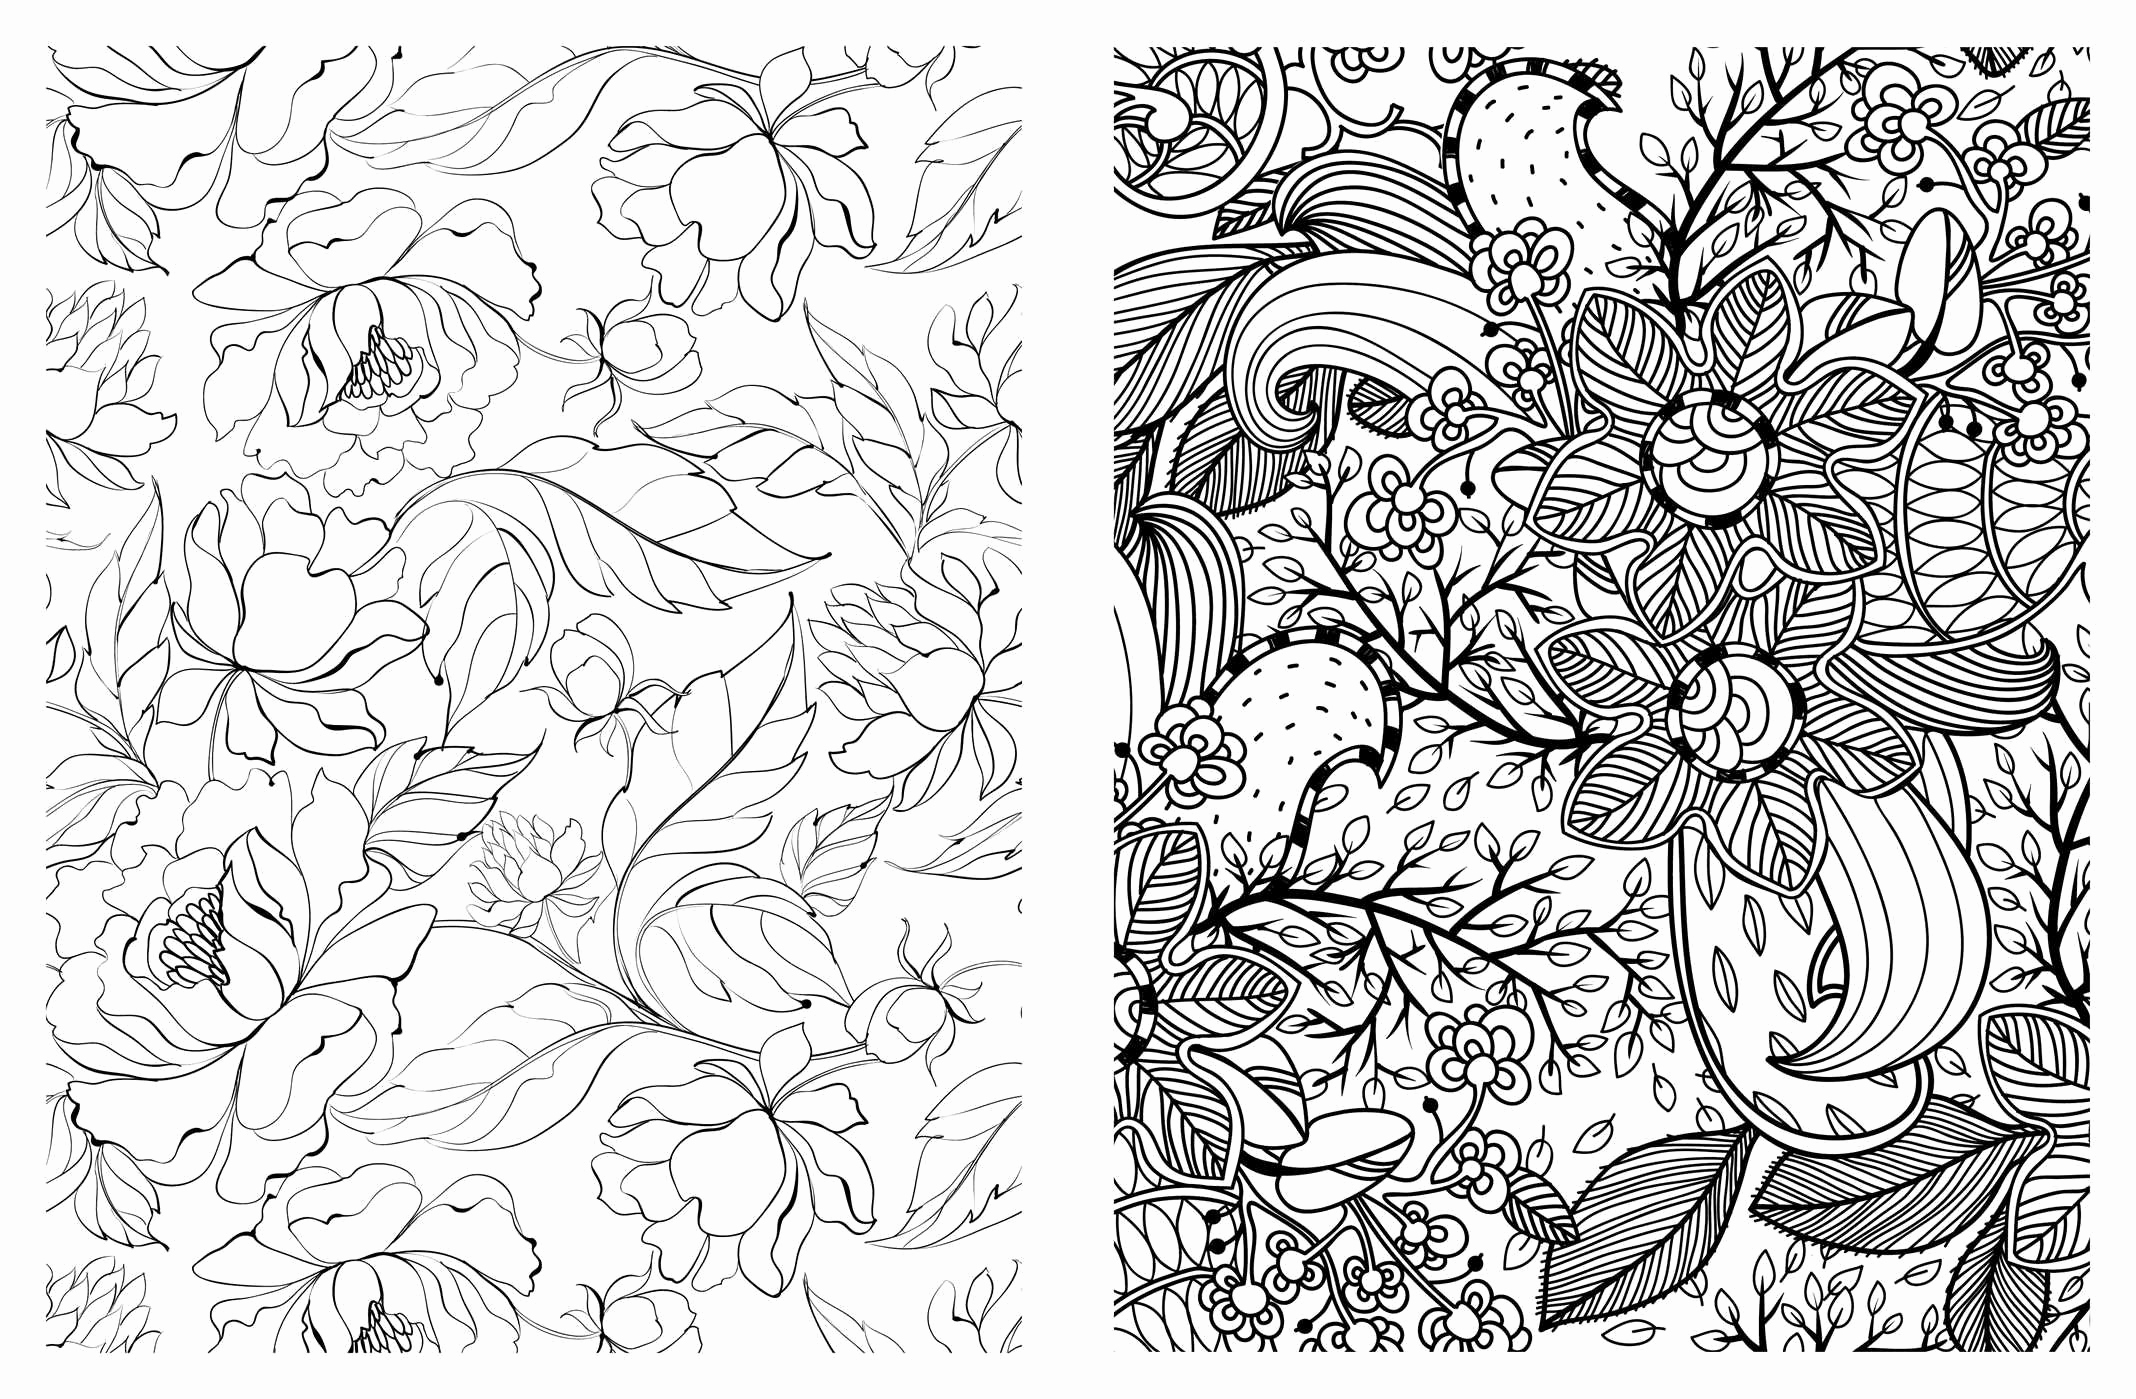 2136x1399 Tea Cup Coloring Pages Luxury Inspiration Graphic Relaxation